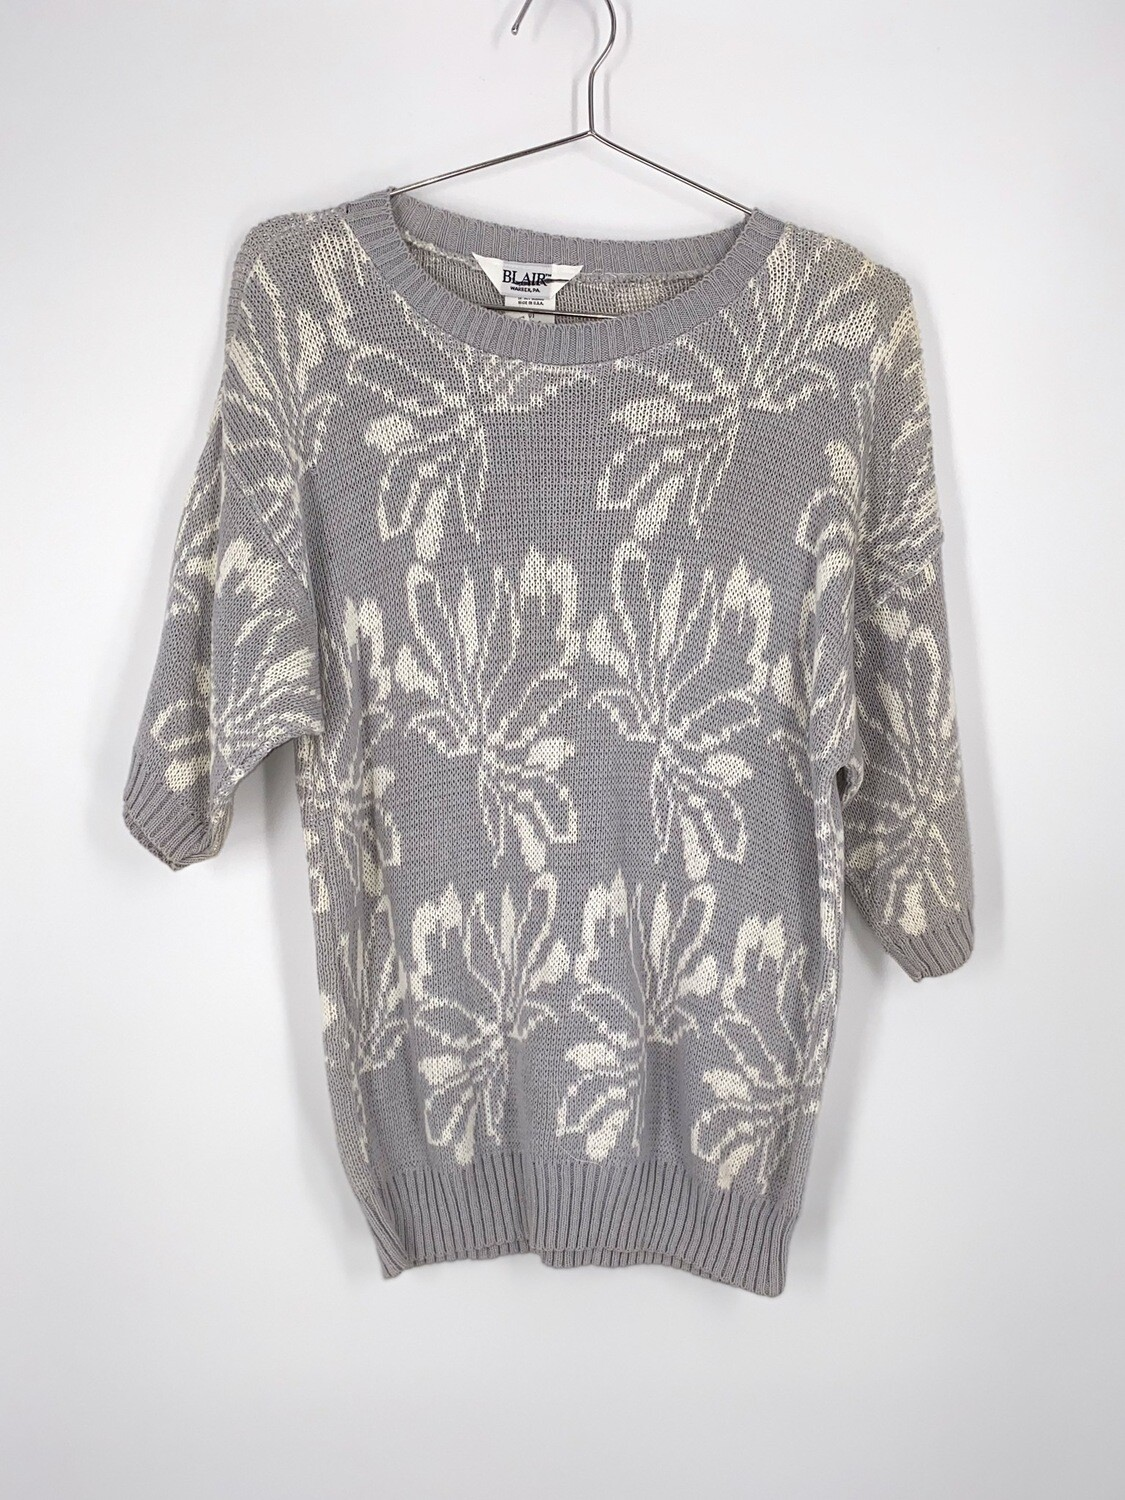 Blair Grey Floral Sweater Size S